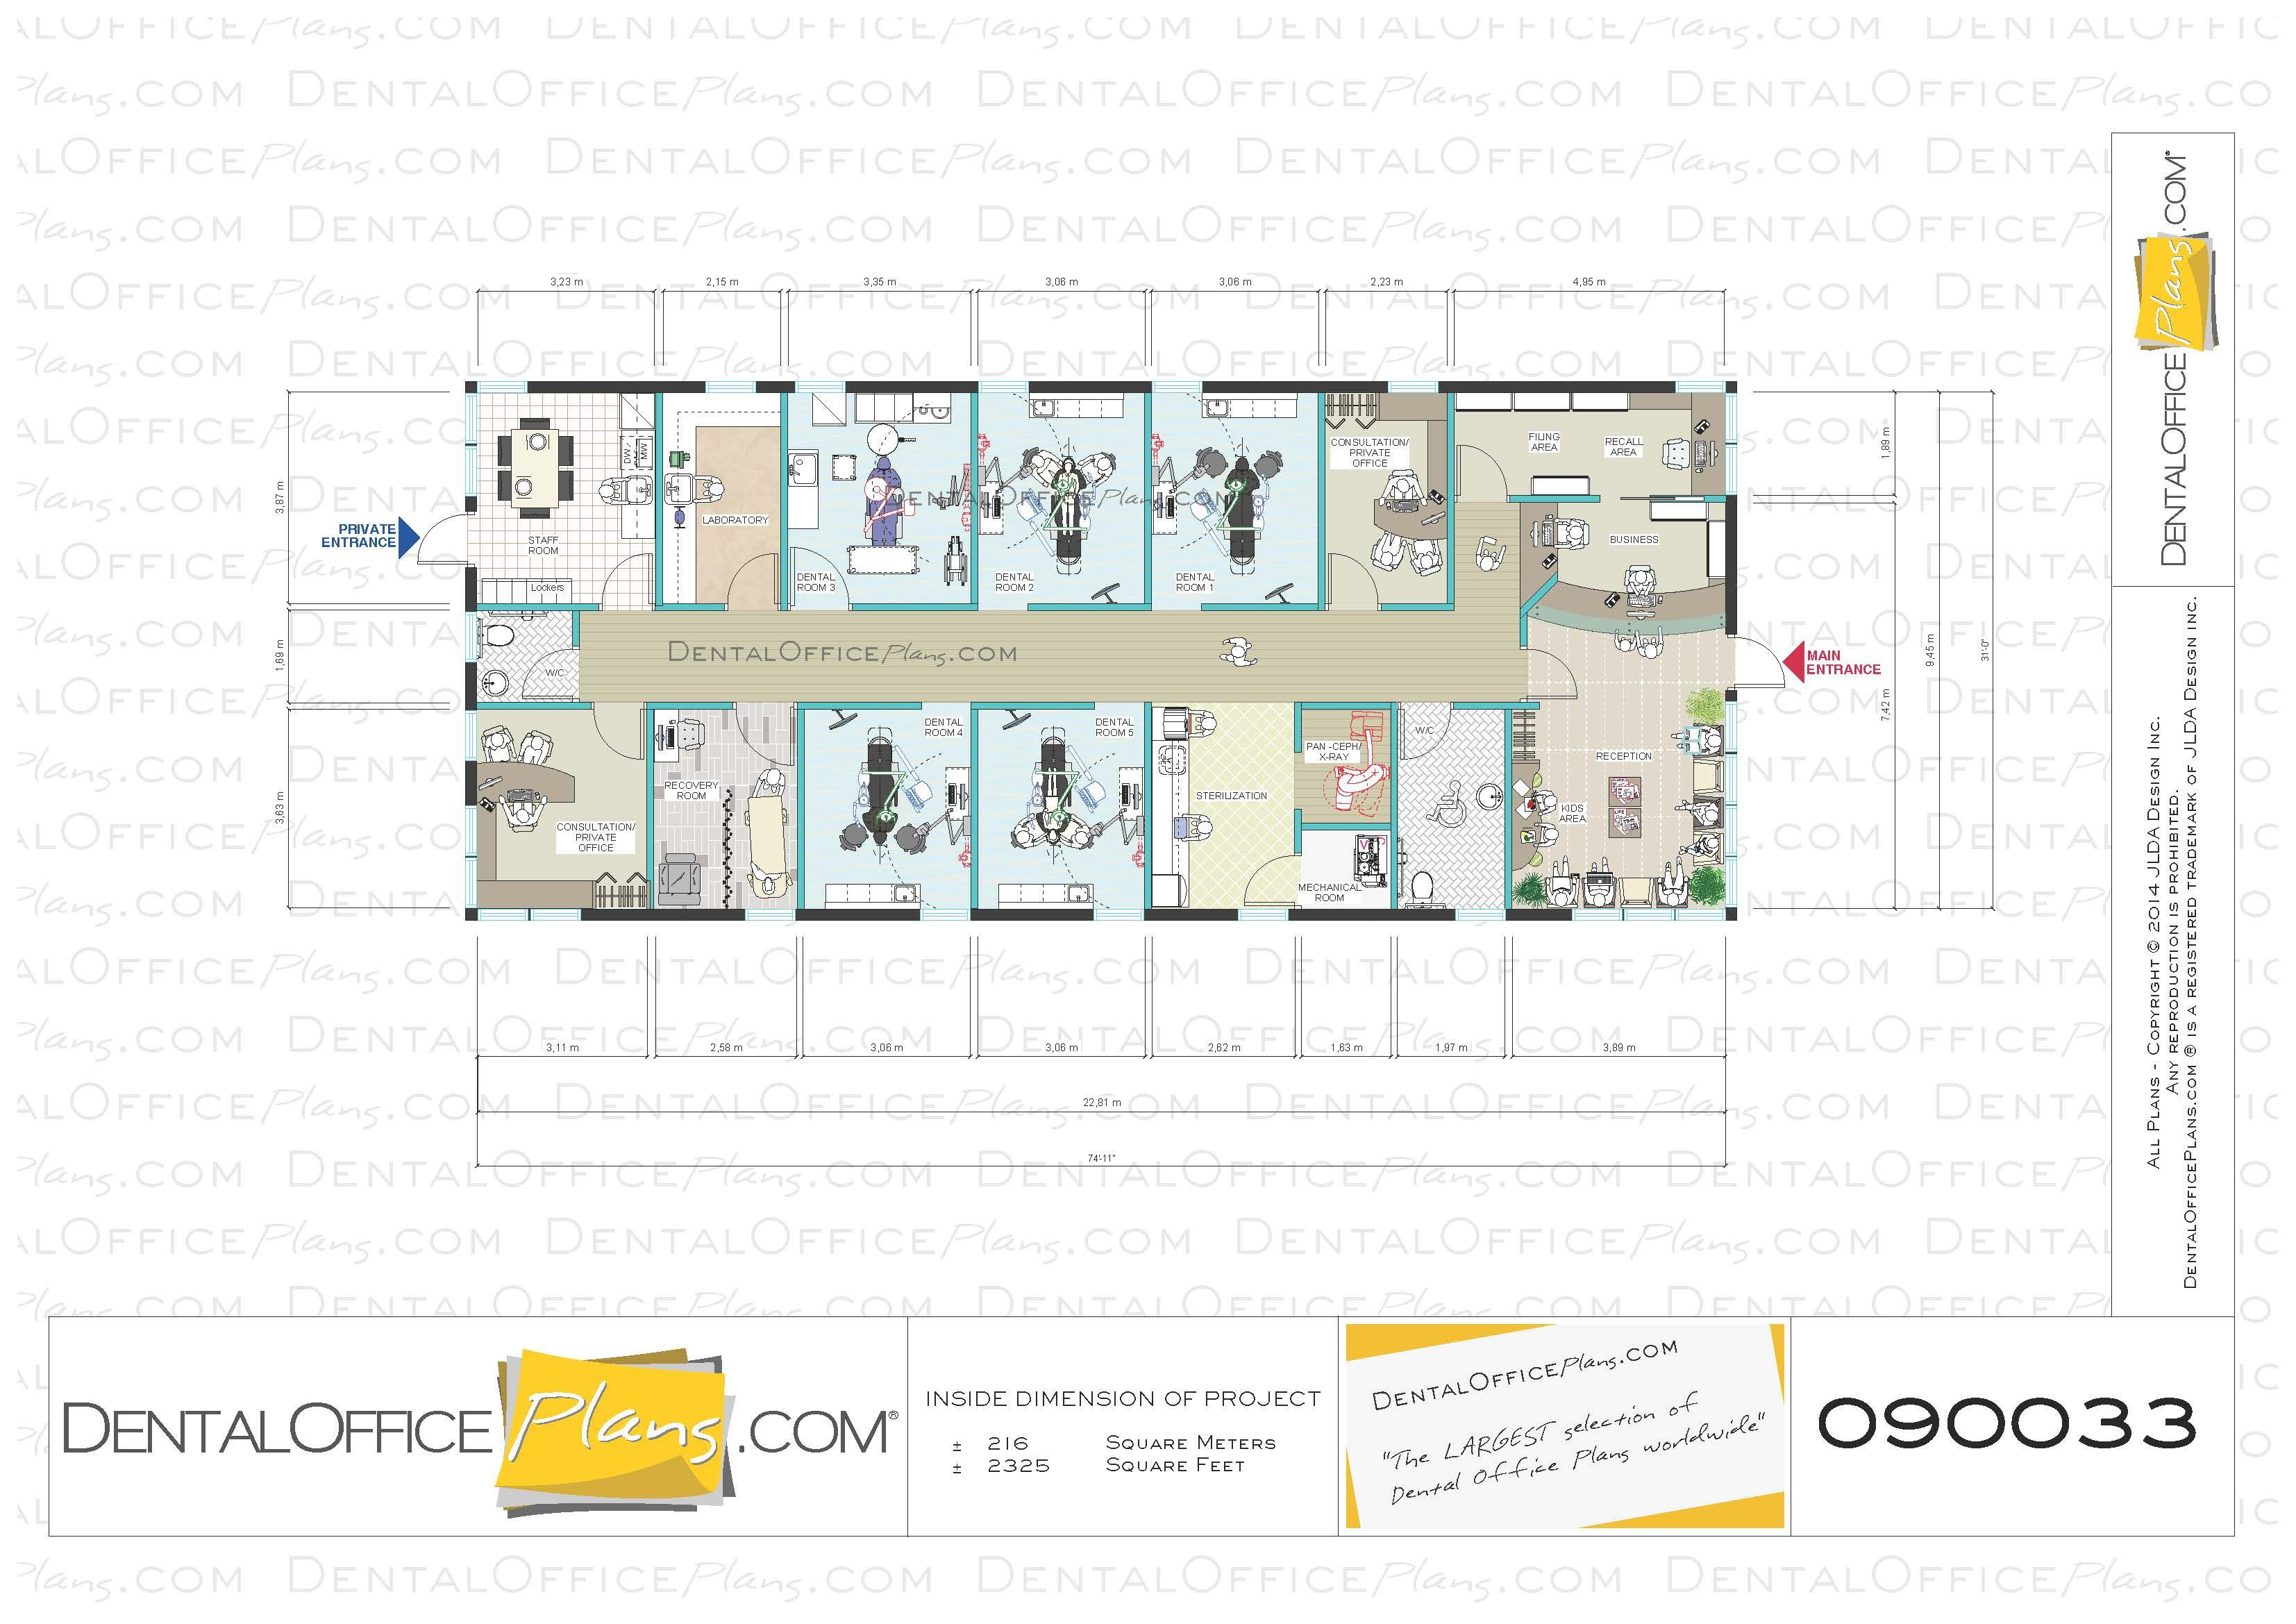 2325 Sq Ft I Like The Reception Area Plan 090033 Office Plans